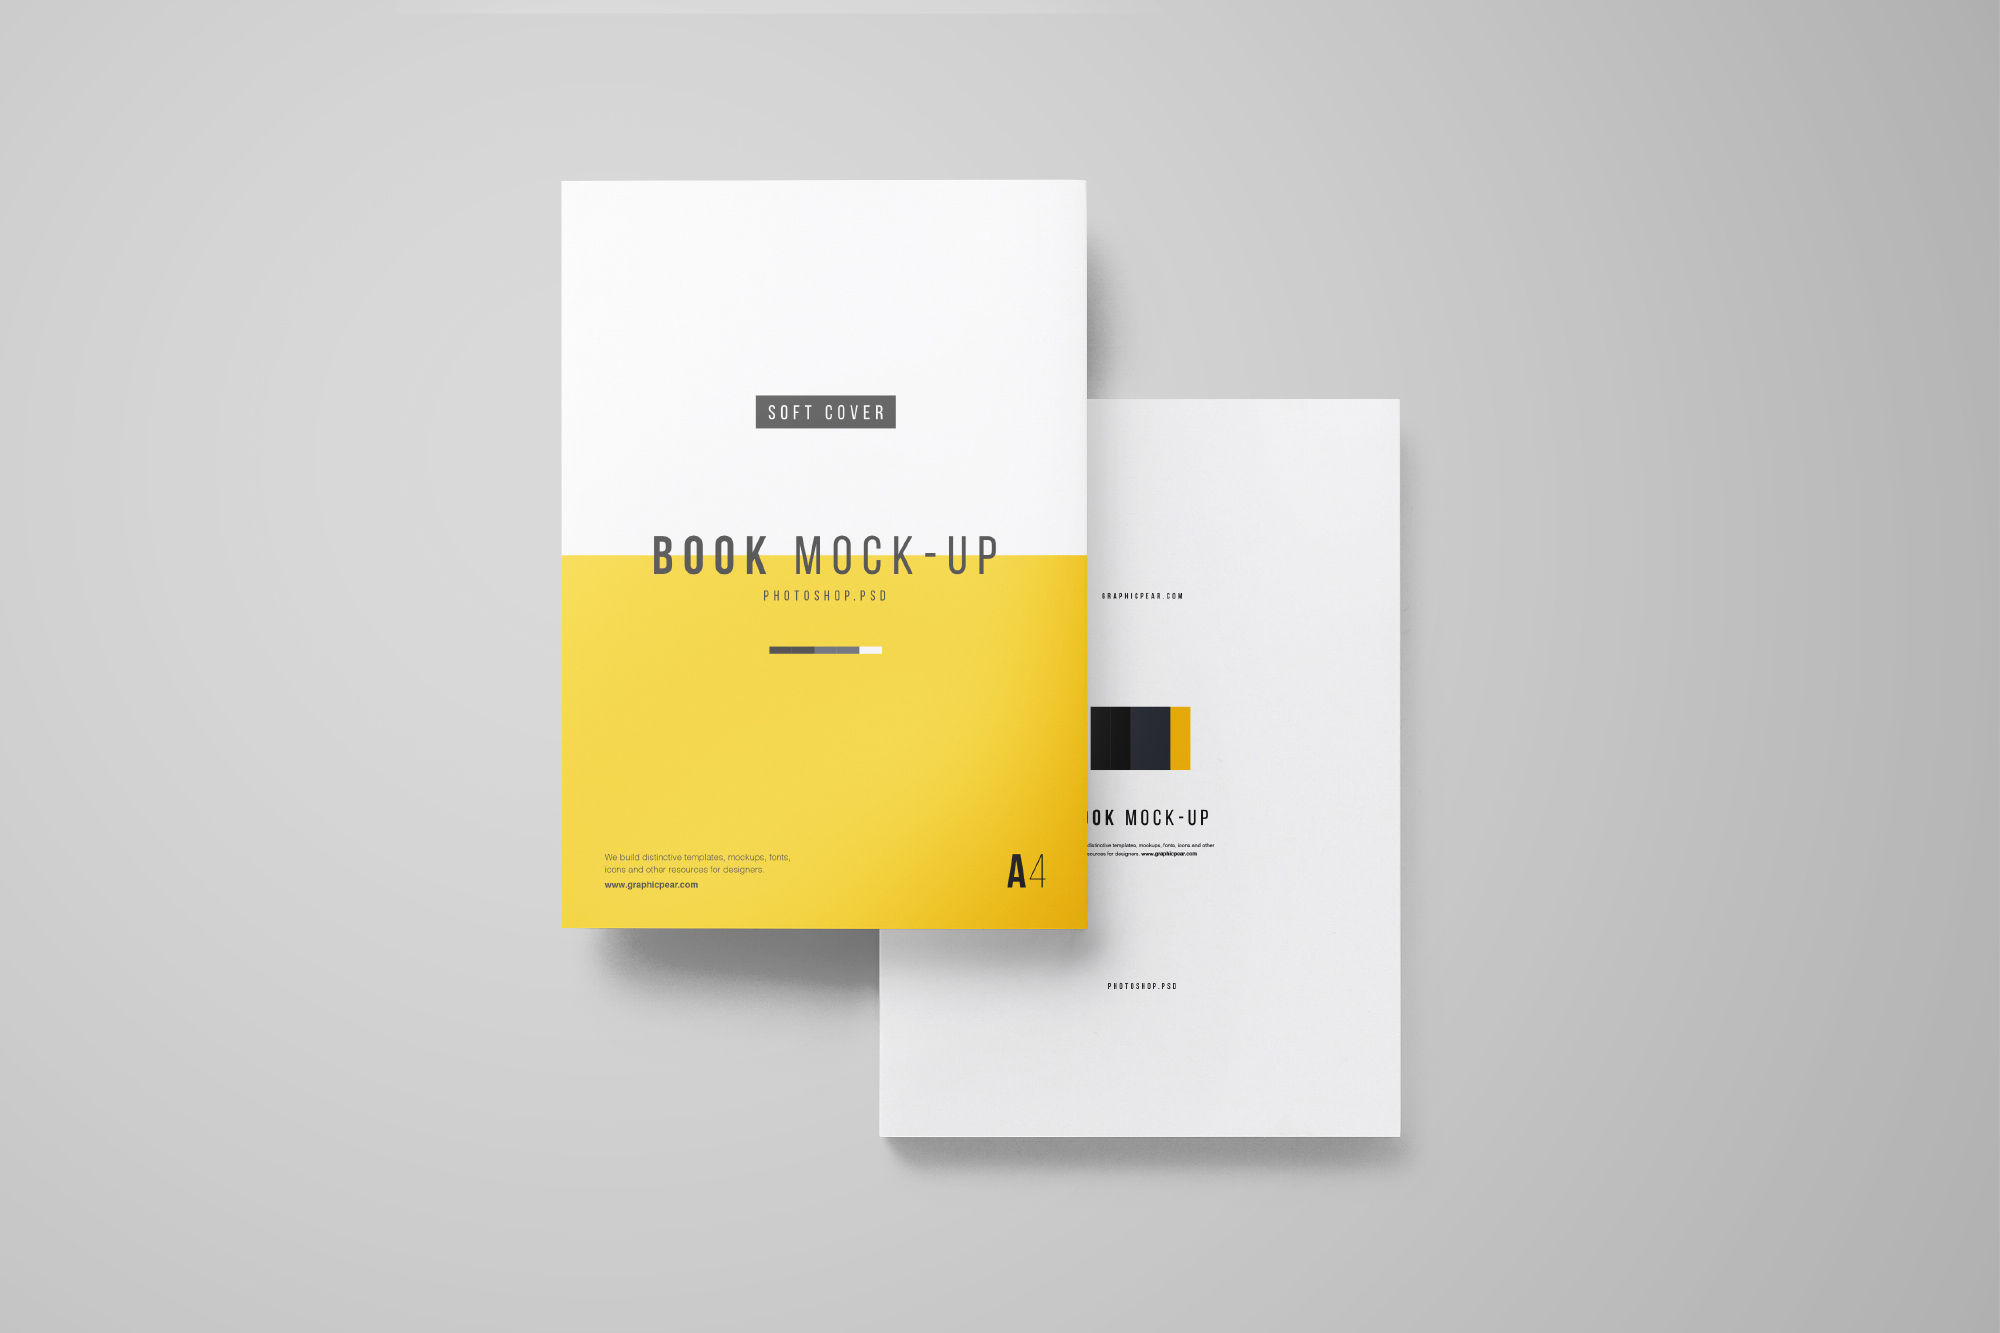 A4 Book Mockup - FREE PSD on Behance